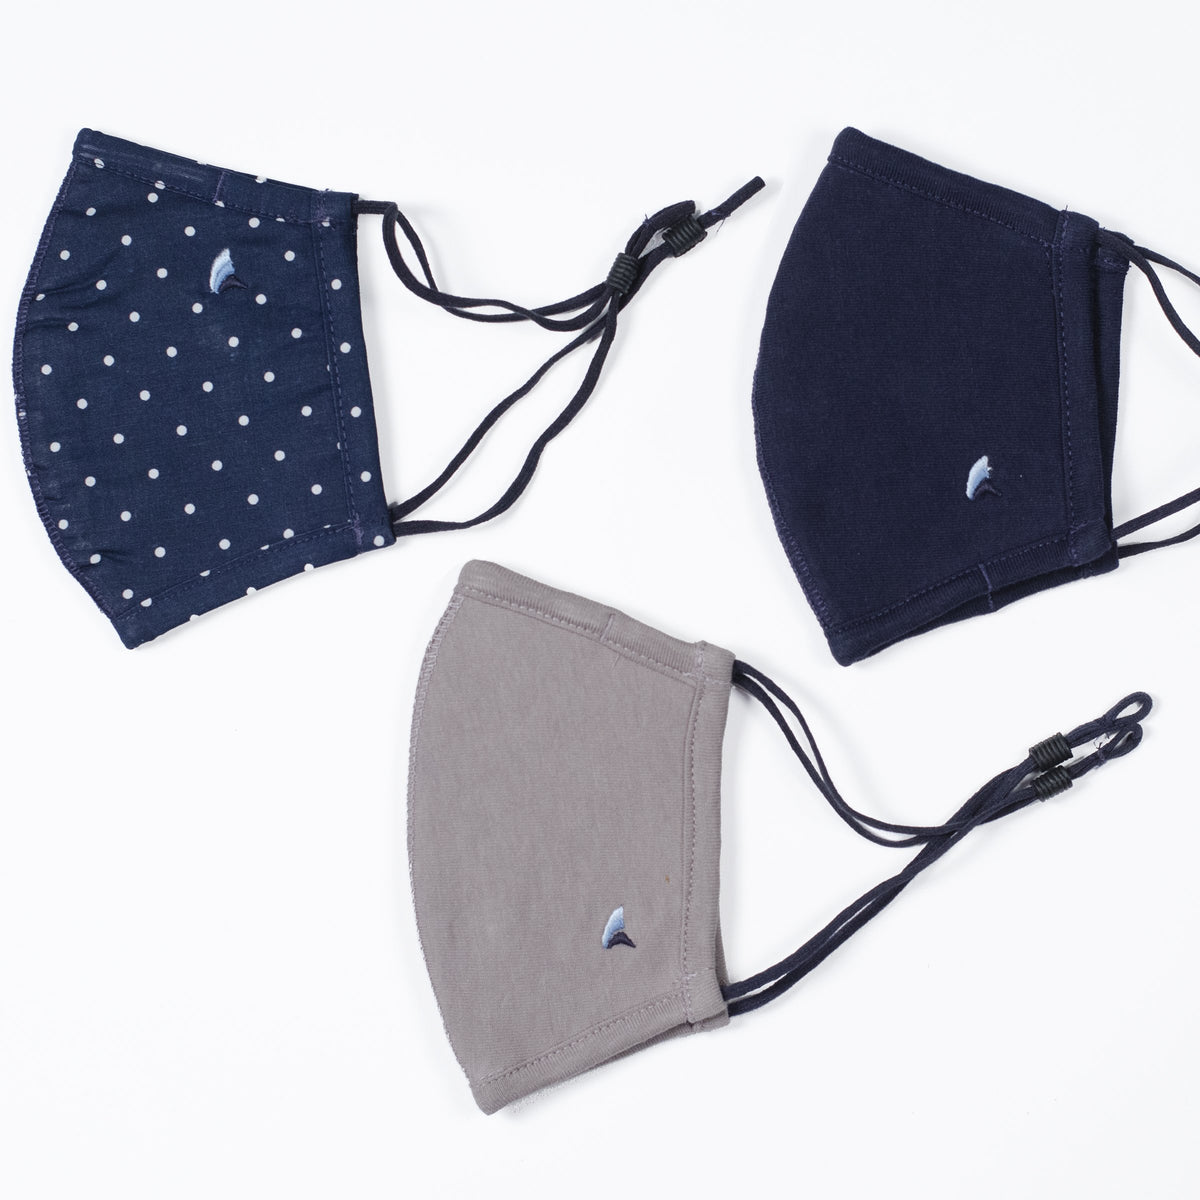 Fabric Face Covering(Navy Blazer Mini Dots/Navy/Gray 3-Pack) 2